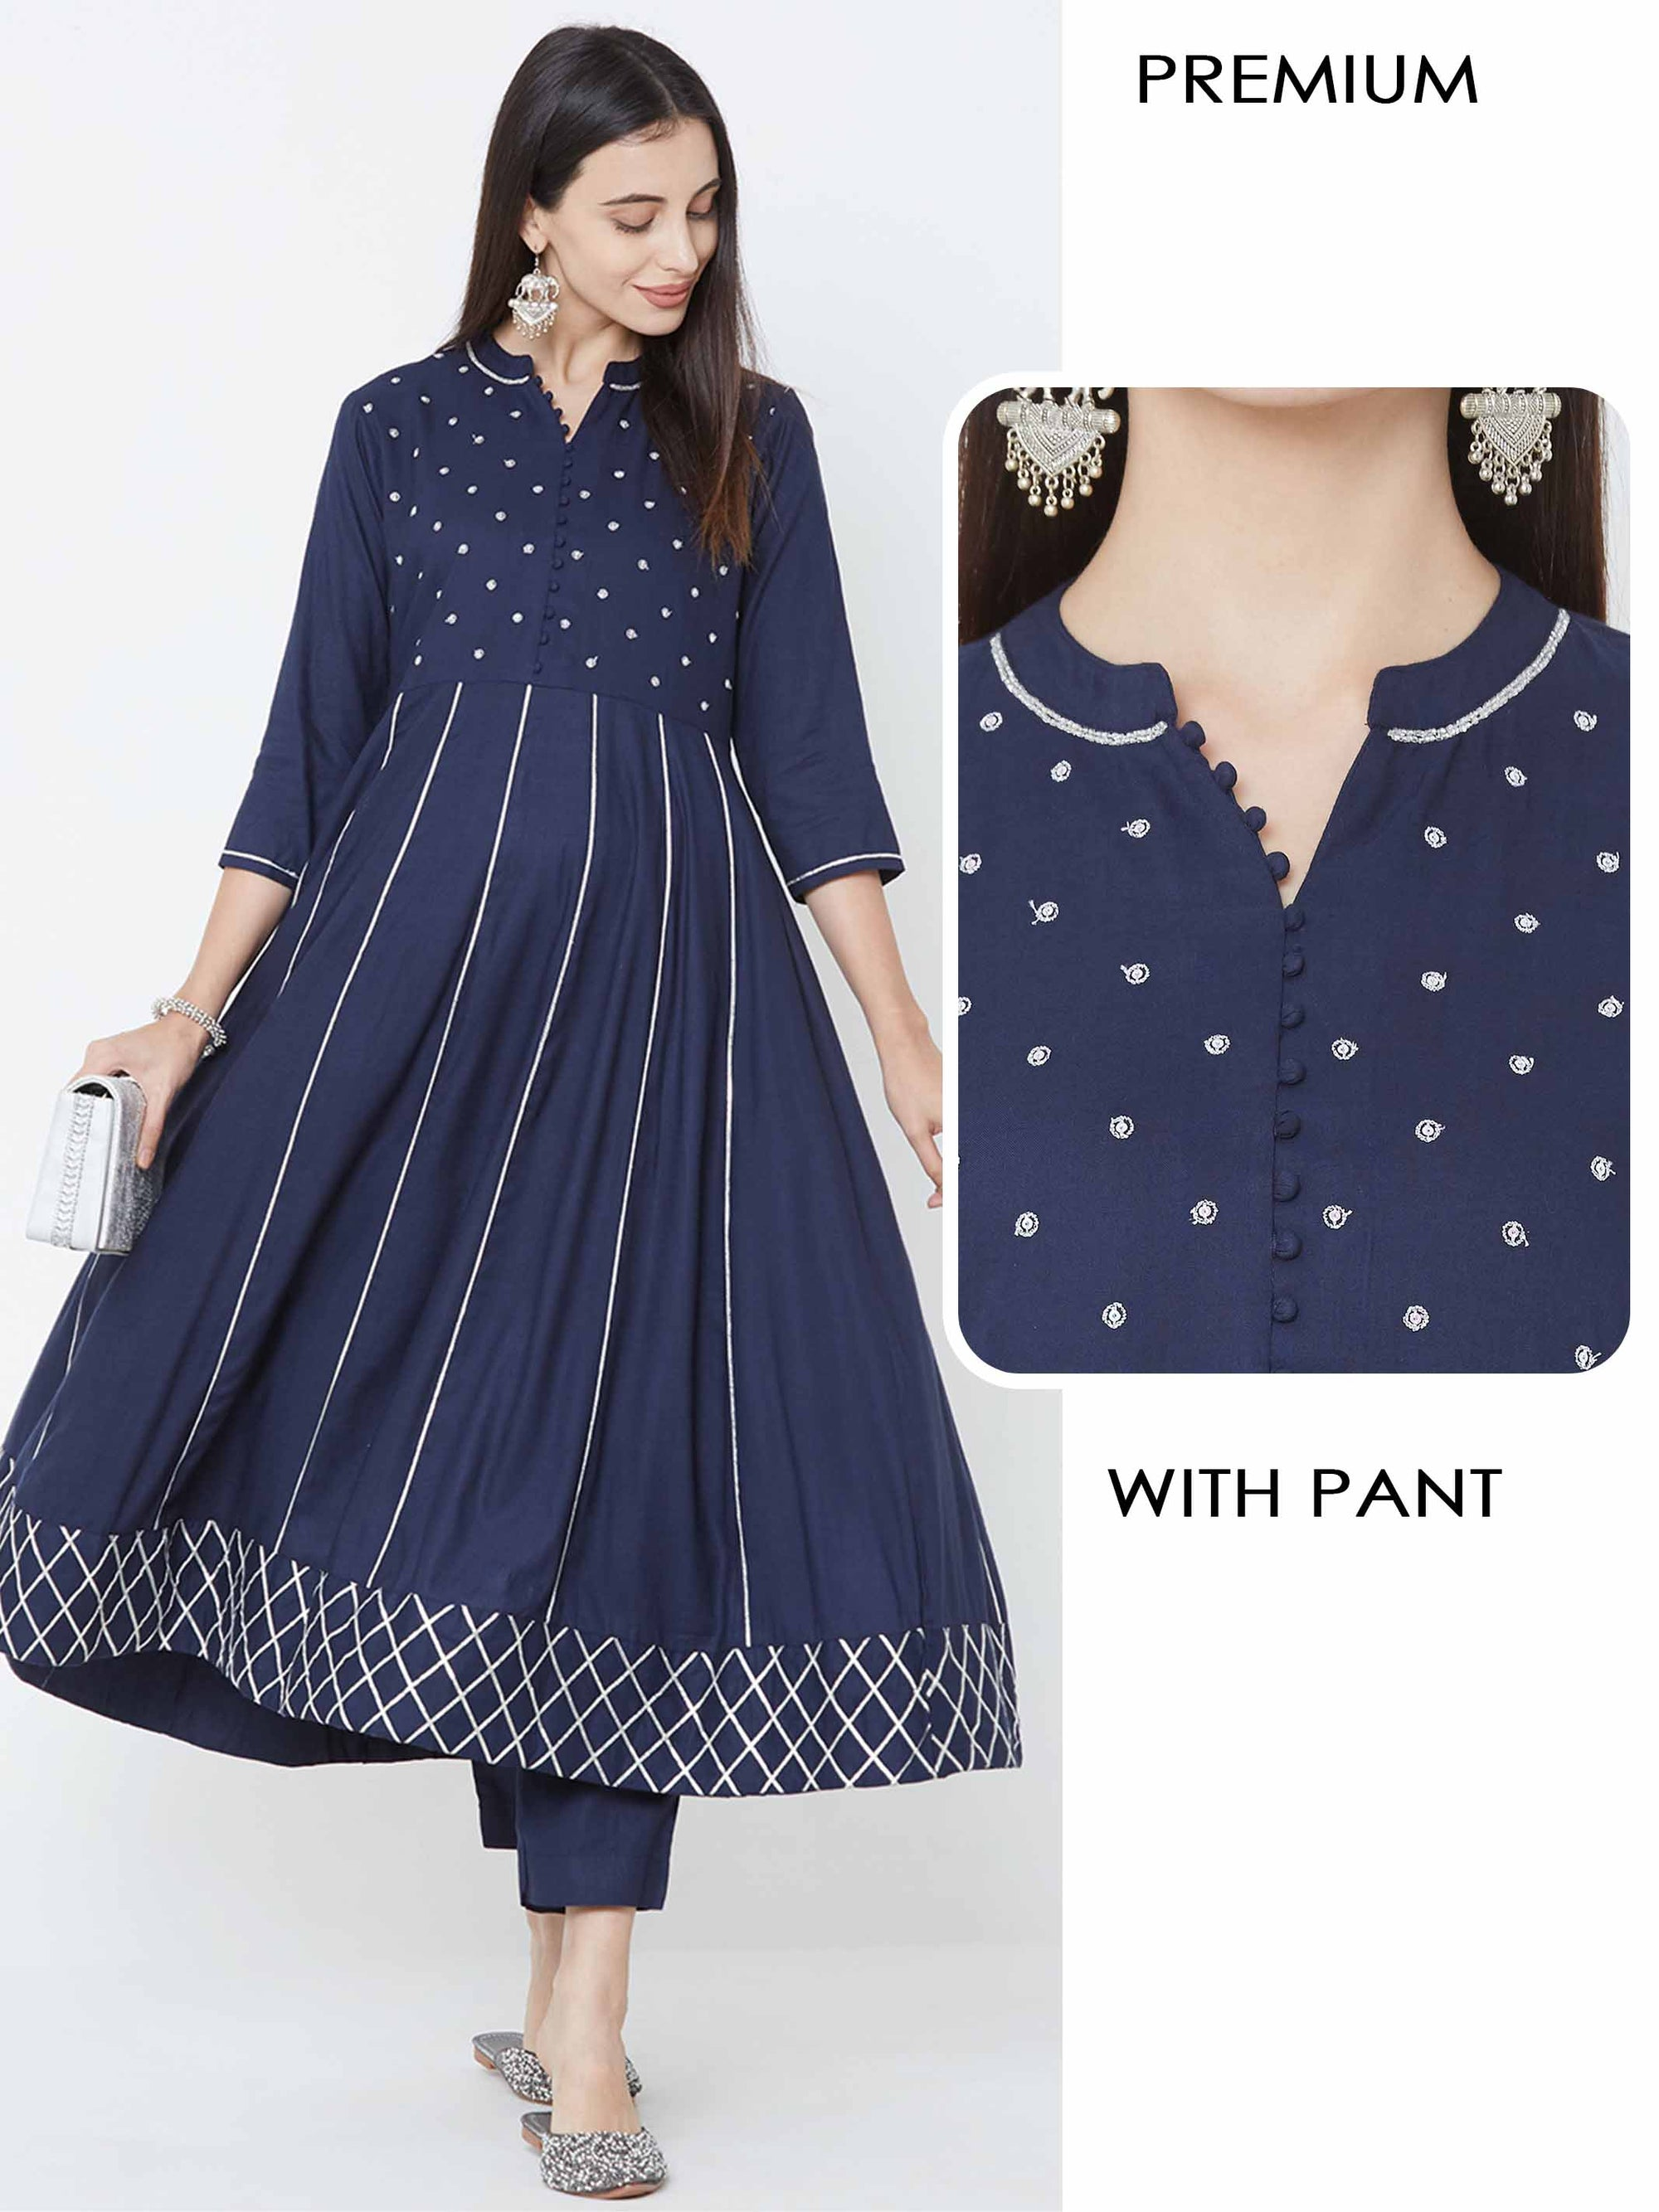 Silver Zari & Gota Embellished Kurta with Solid Matching Pant – Navy Blue